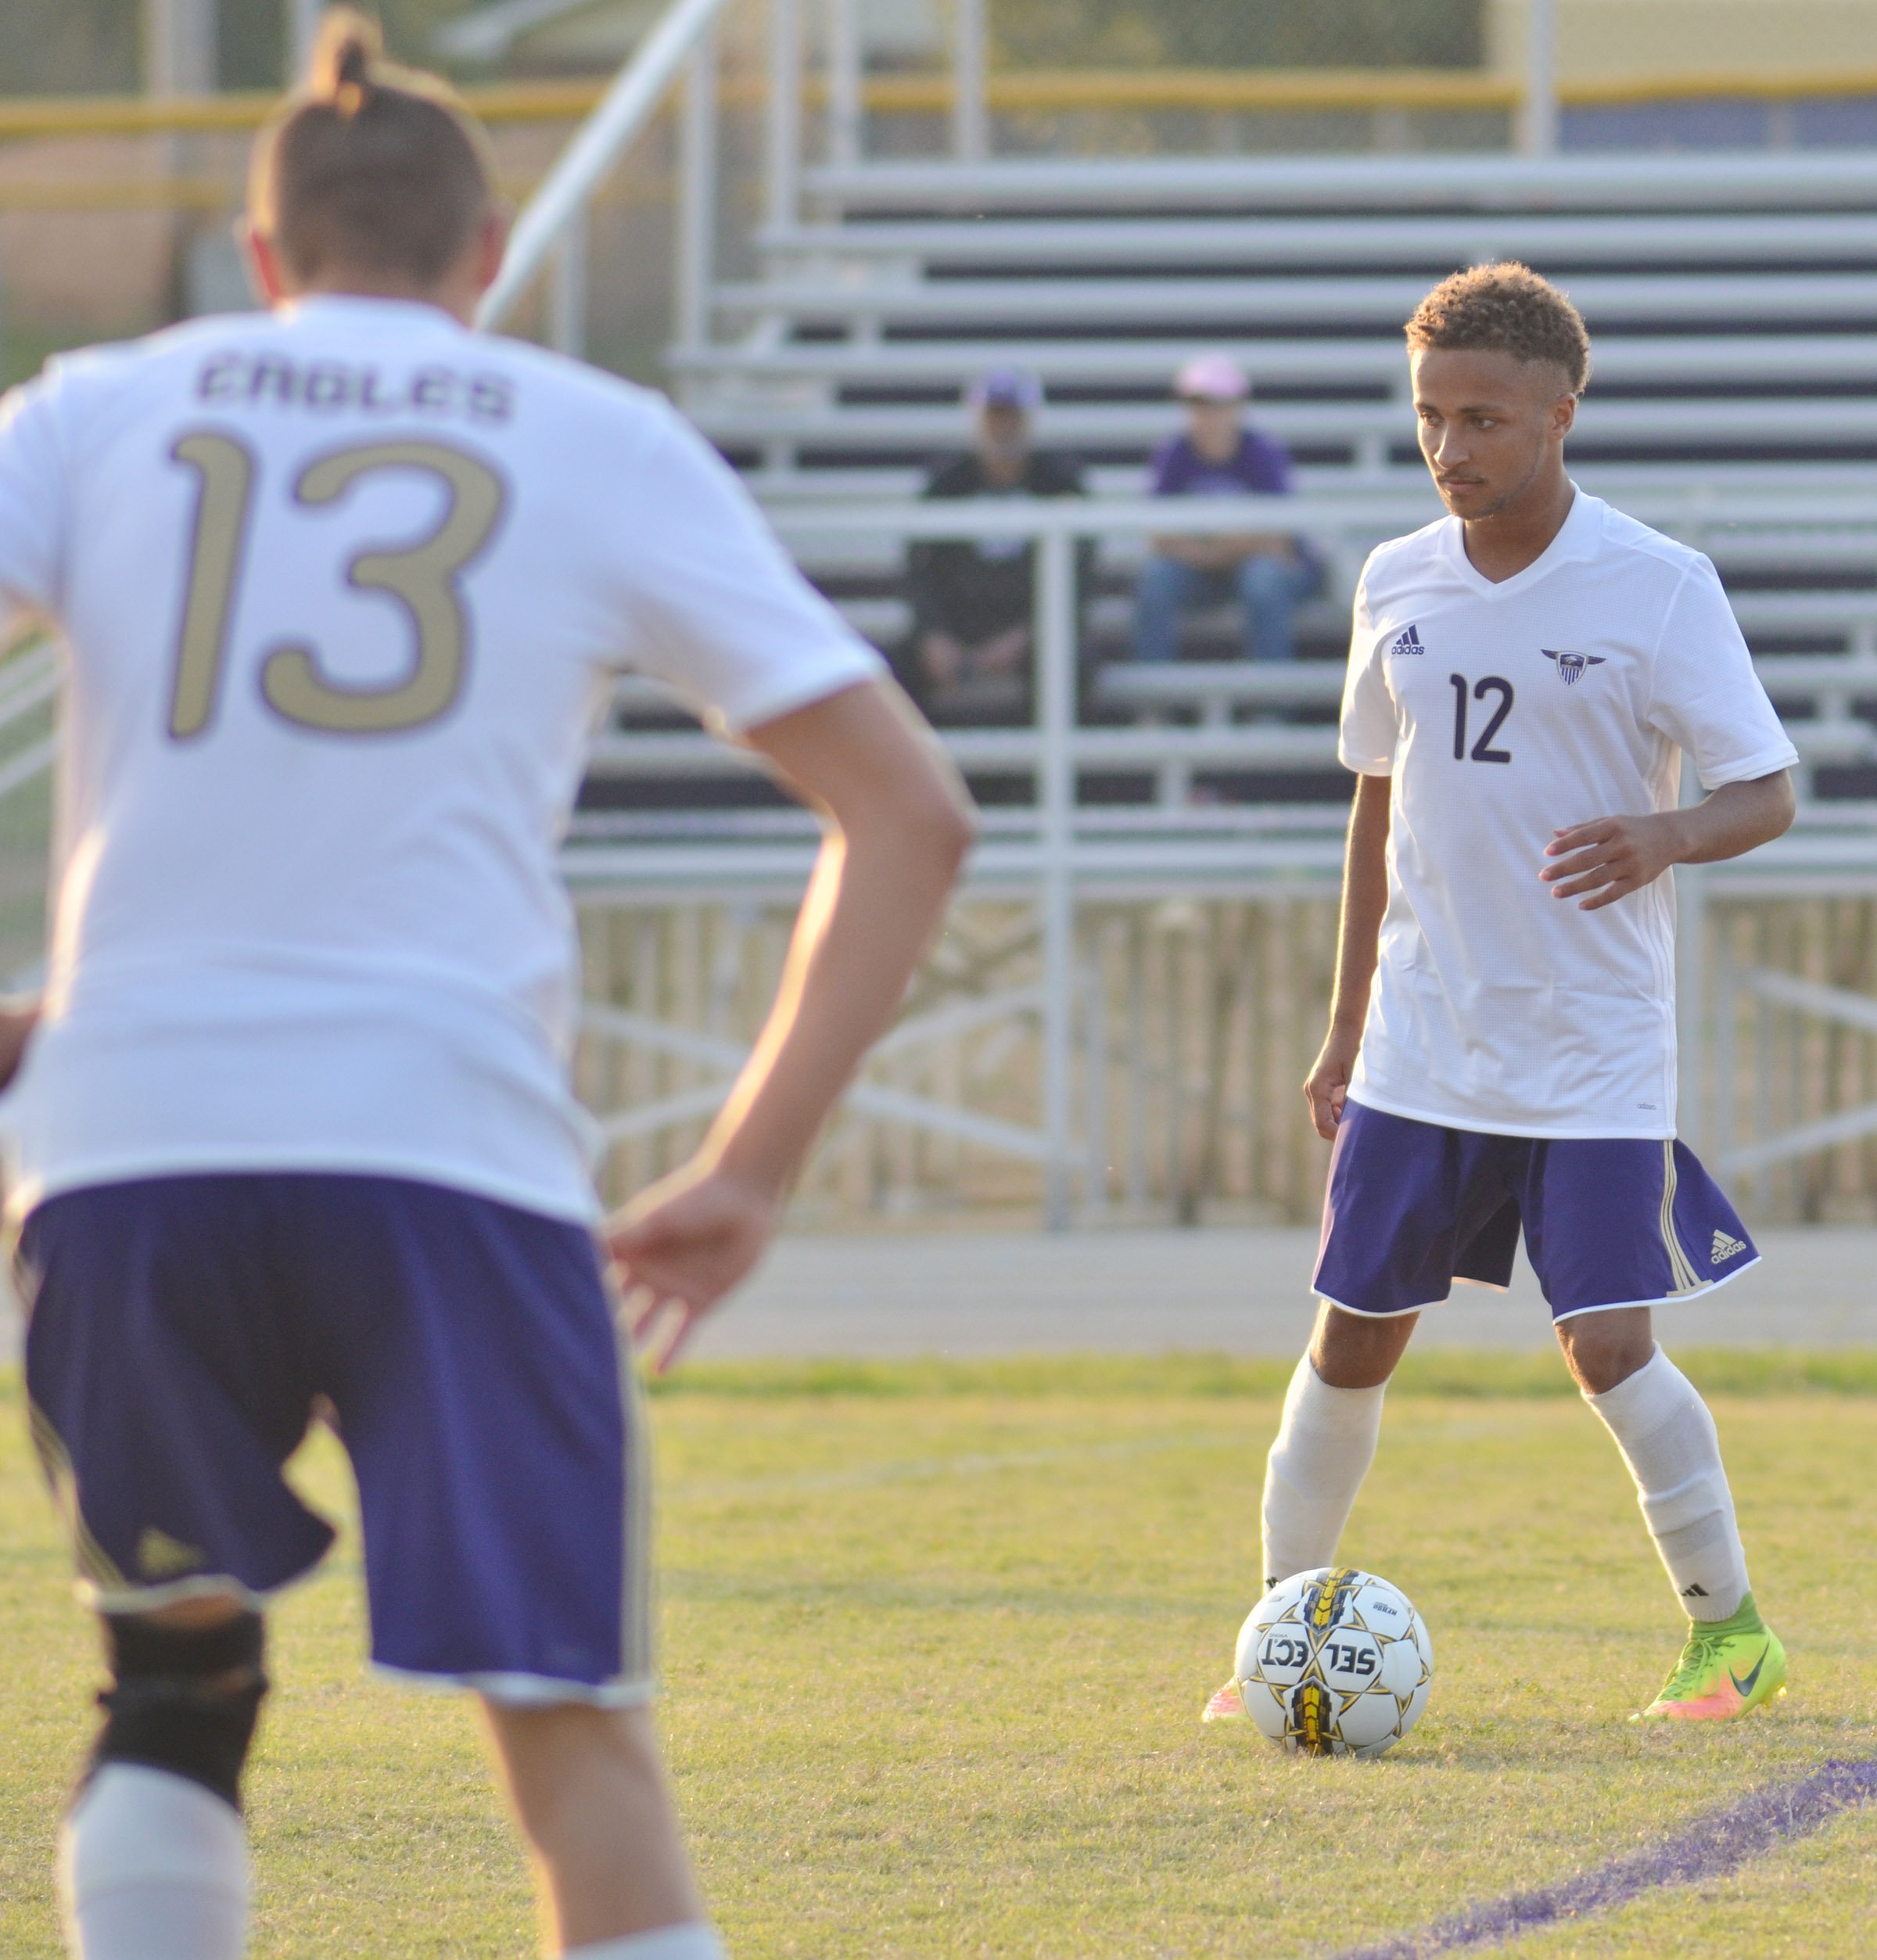 CHS senior Ethan Lay gets set to kick the ball.